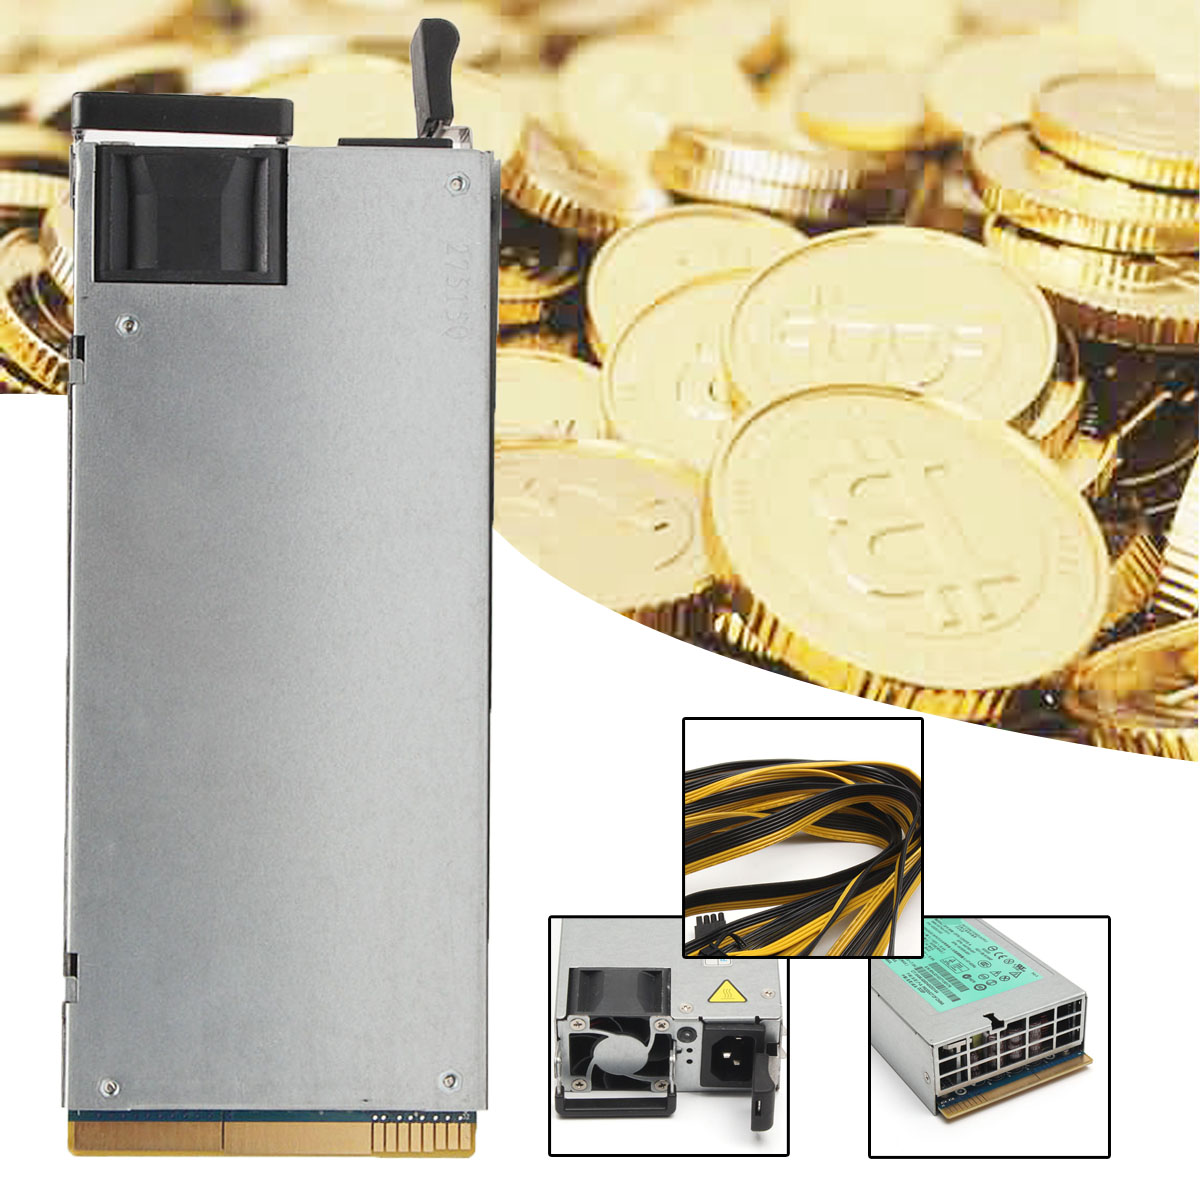 DPS 1200FB 1200QB Power Supply With  Breakout Board Adapter Panel 12 Cables (6+2)P For Ethereum Mining MinerDPS 1200FB 1200QB Power Supply With  Breakout Board Adapter Panel 12 Cables (6+2)P For Ethereum Mining Miner